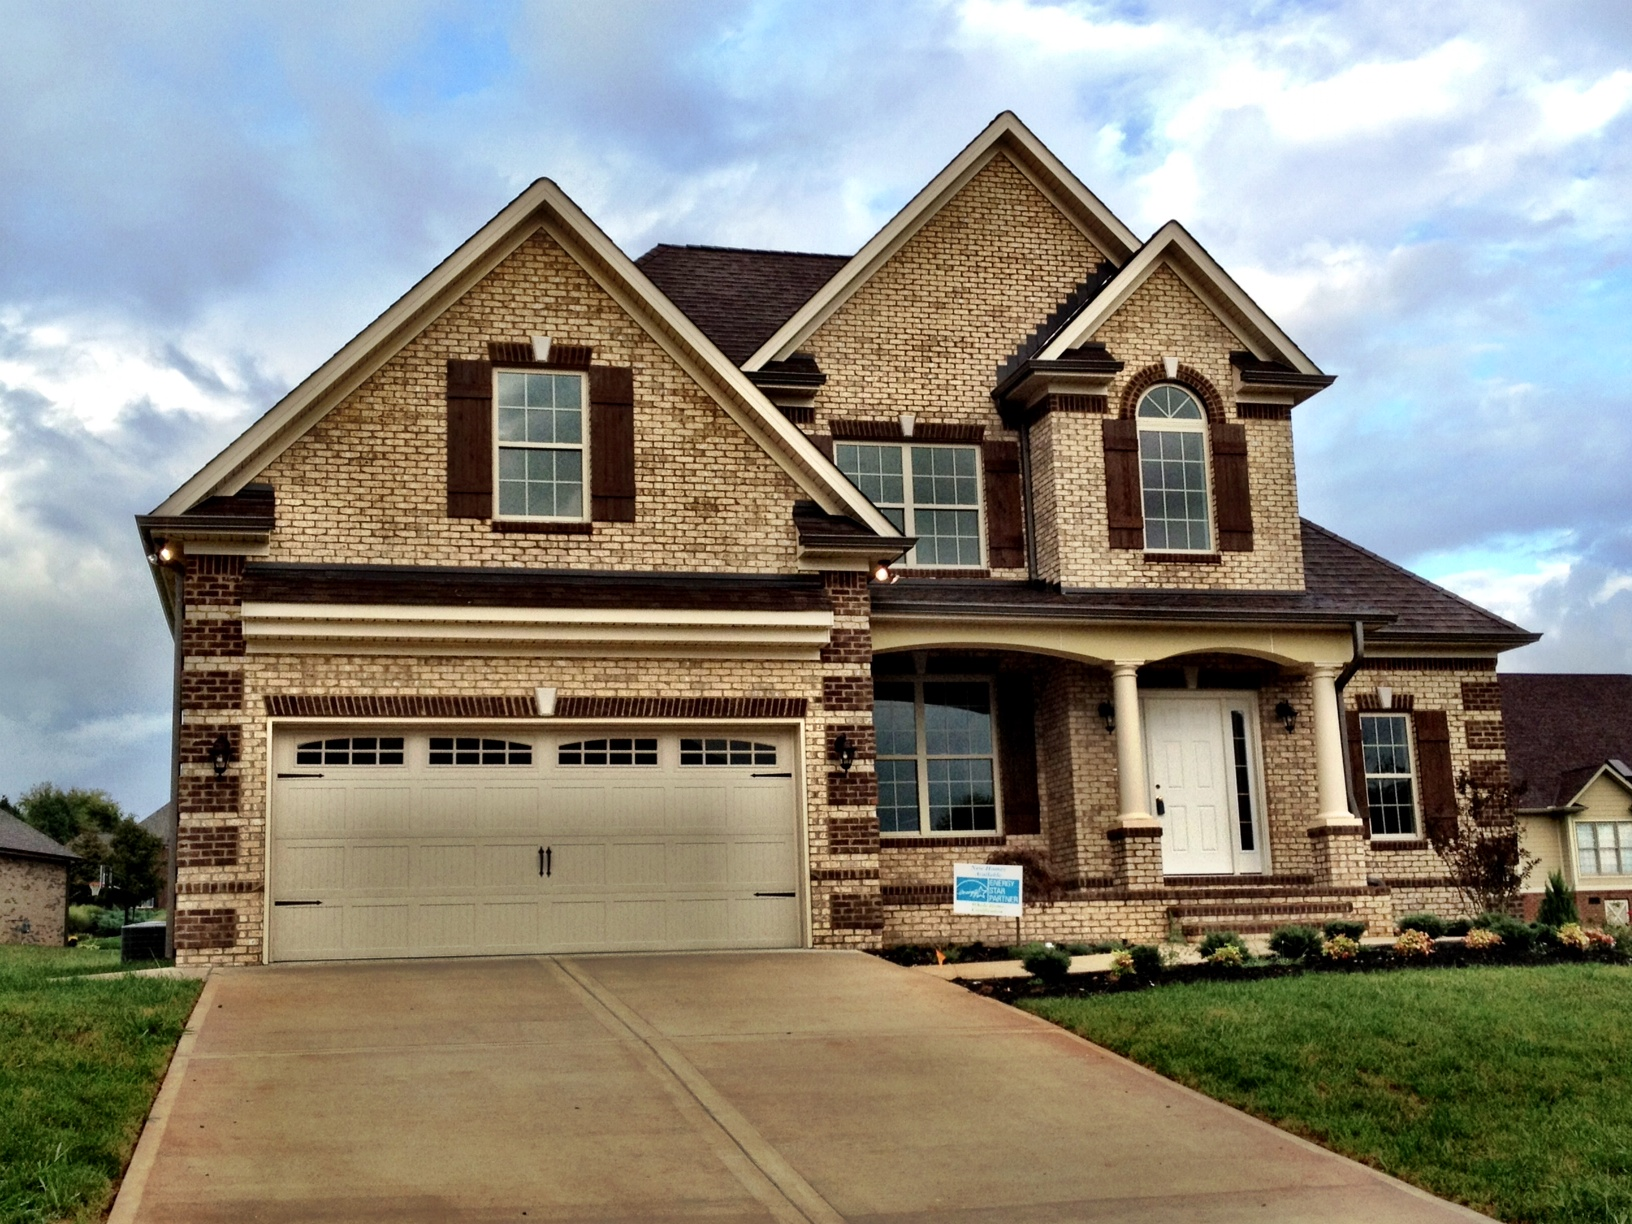 Homes Sale Knoxville Tn